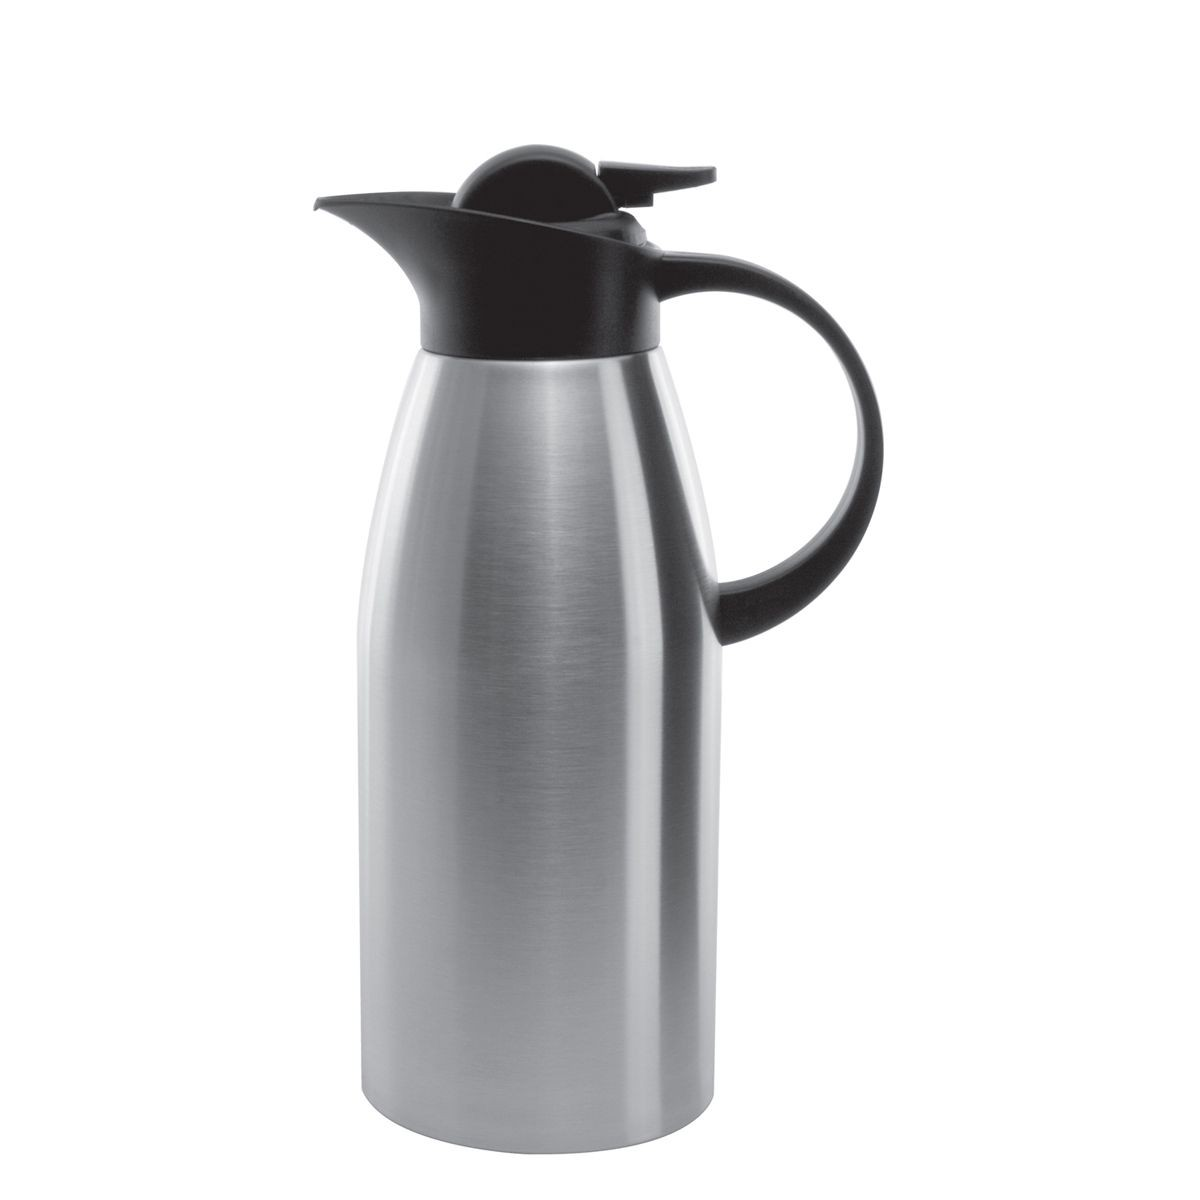 Service Ideas KVP1900 Brushed Stainless Touch Coffee Server, 1.9 Liter